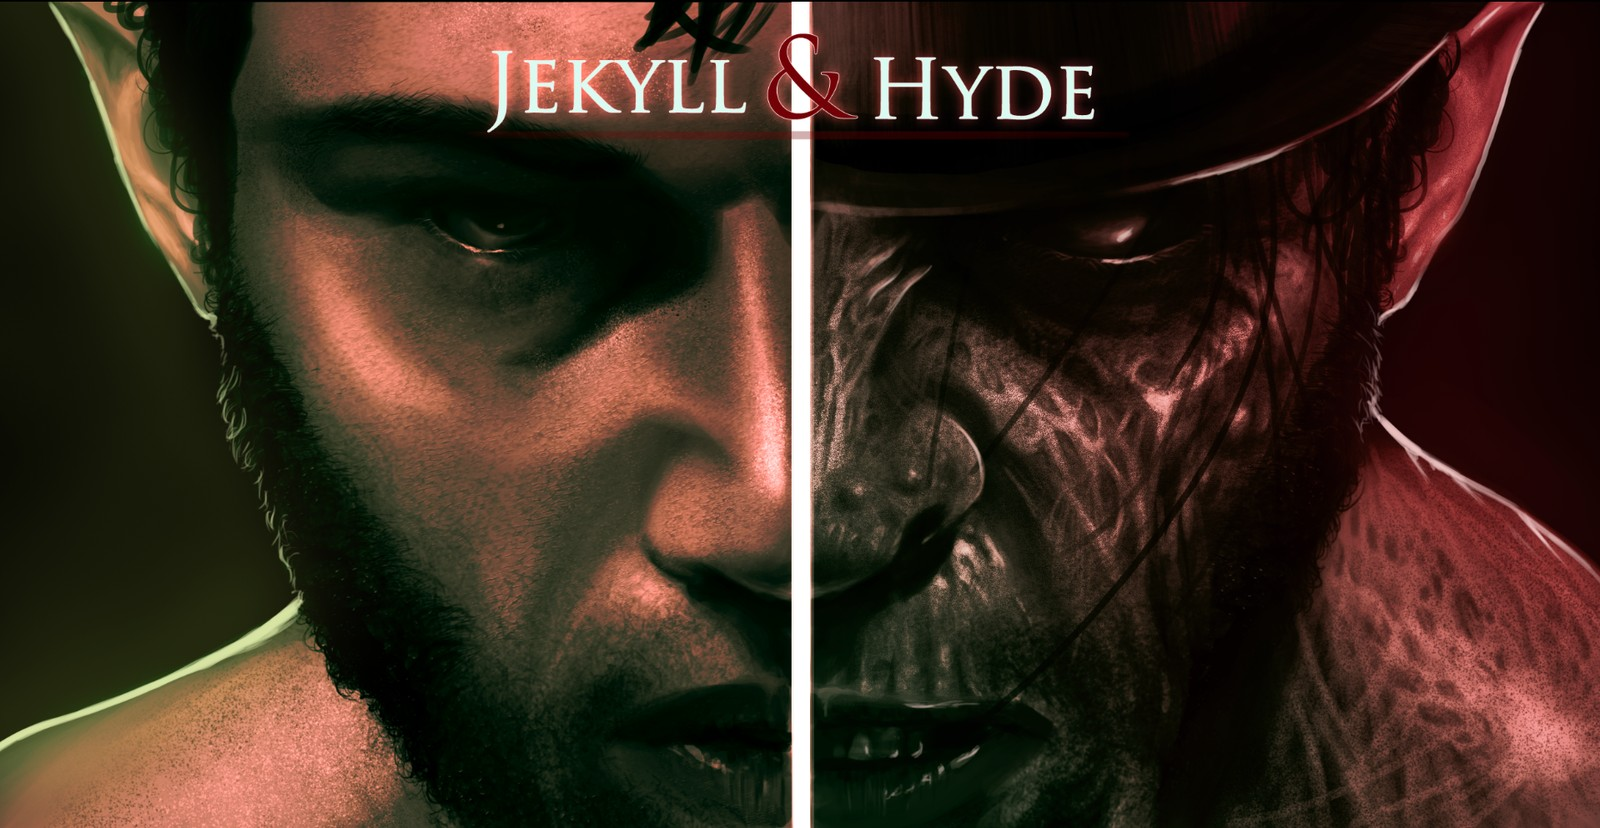 dr.jekyll essay frankenstein hyde mr Home literature essays frankenstein dr jekyll and mr both robert louis stevenson's dr jekyll and mr hyde and mary shelley's frankenstein tell cautionary.